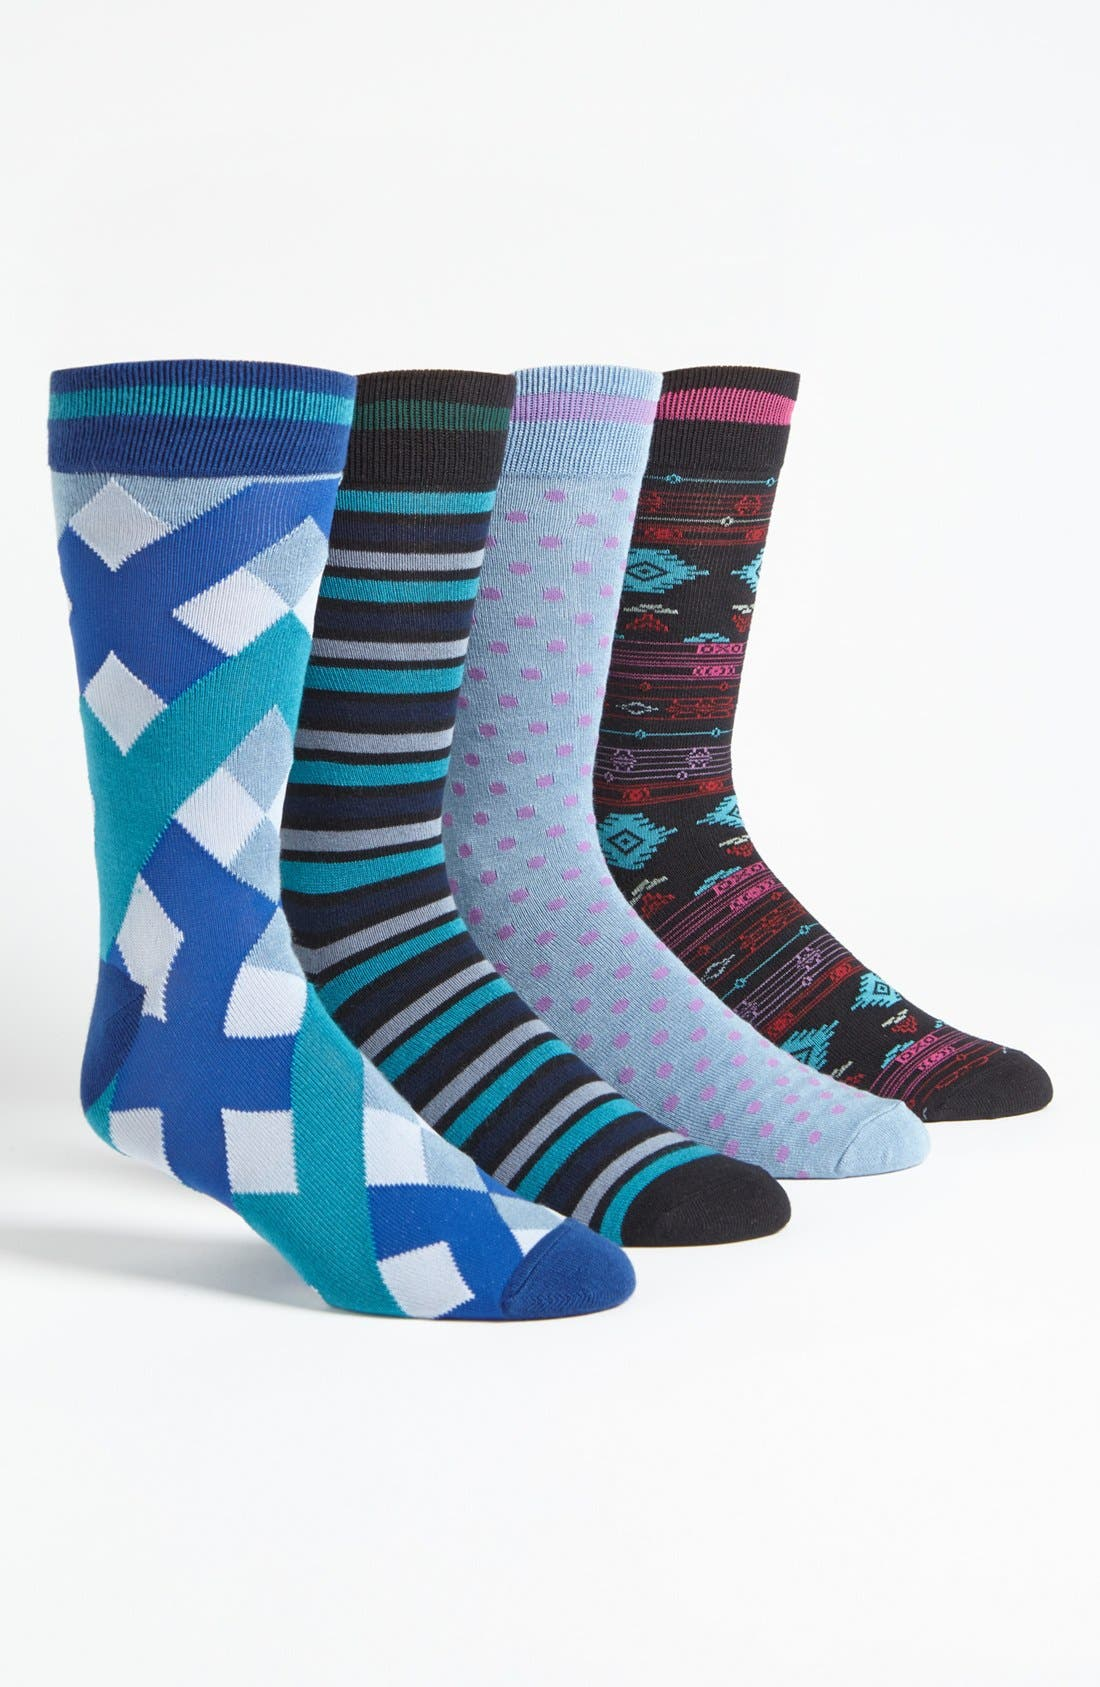 Main Image - Basic Sock 'Bottoms Out' Pattern Socks (4-Pack)